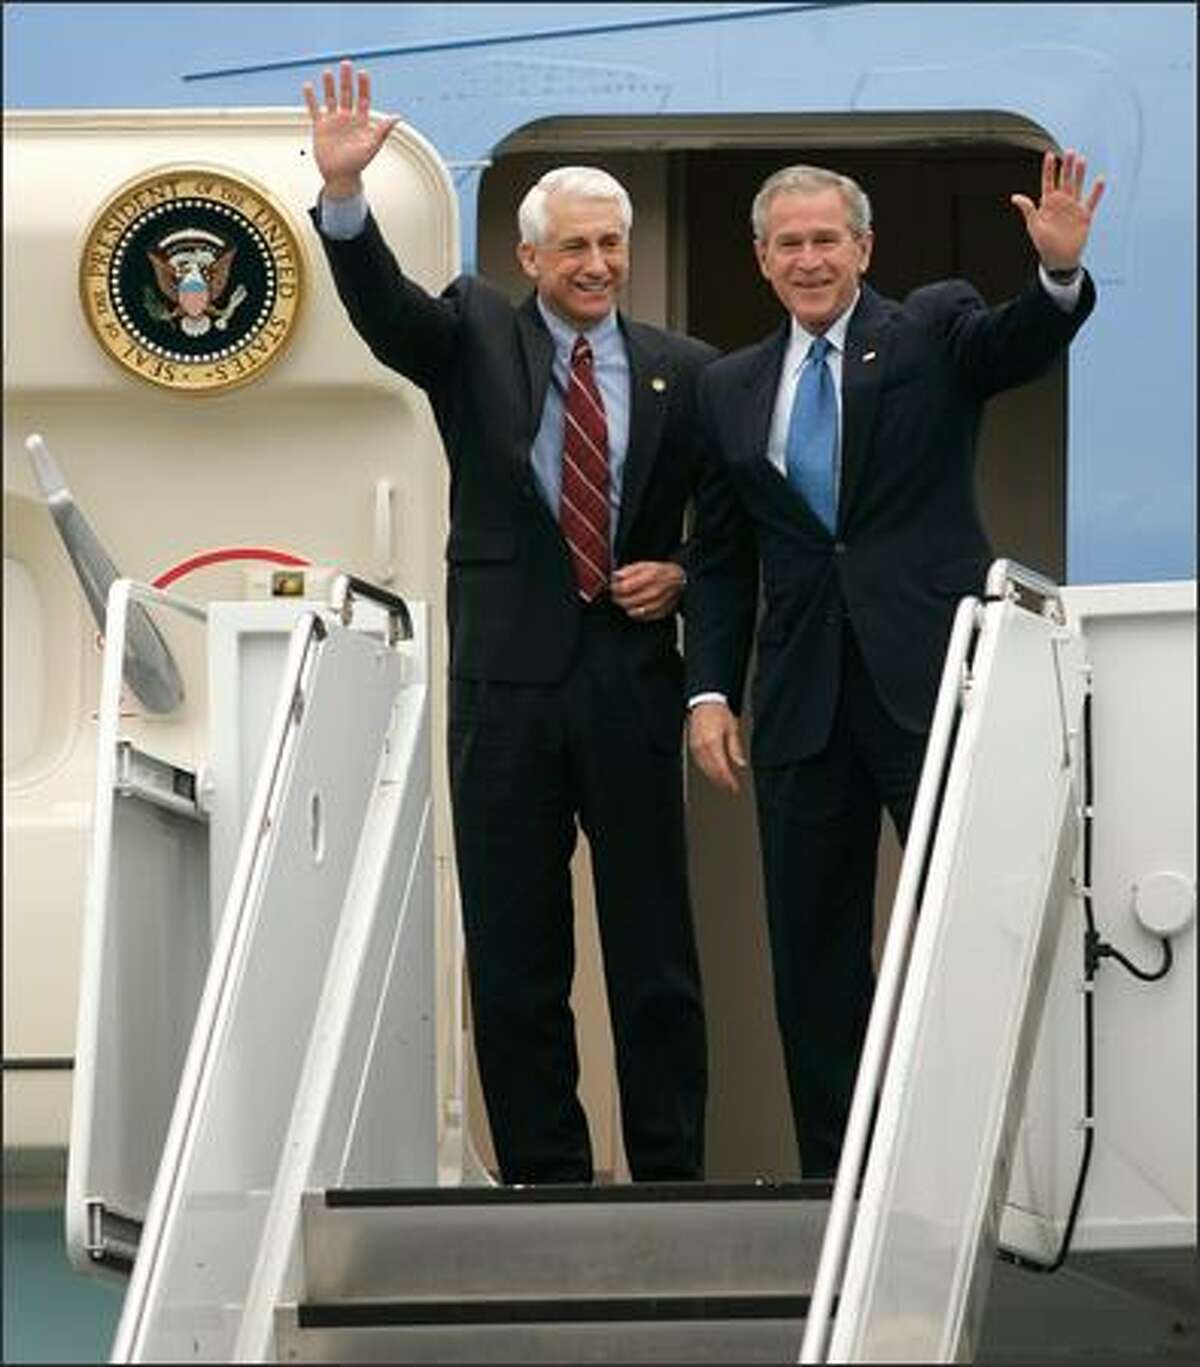 President Bush greets the crowd as he emerges from Air Force One with Rep. Dave Reichert.